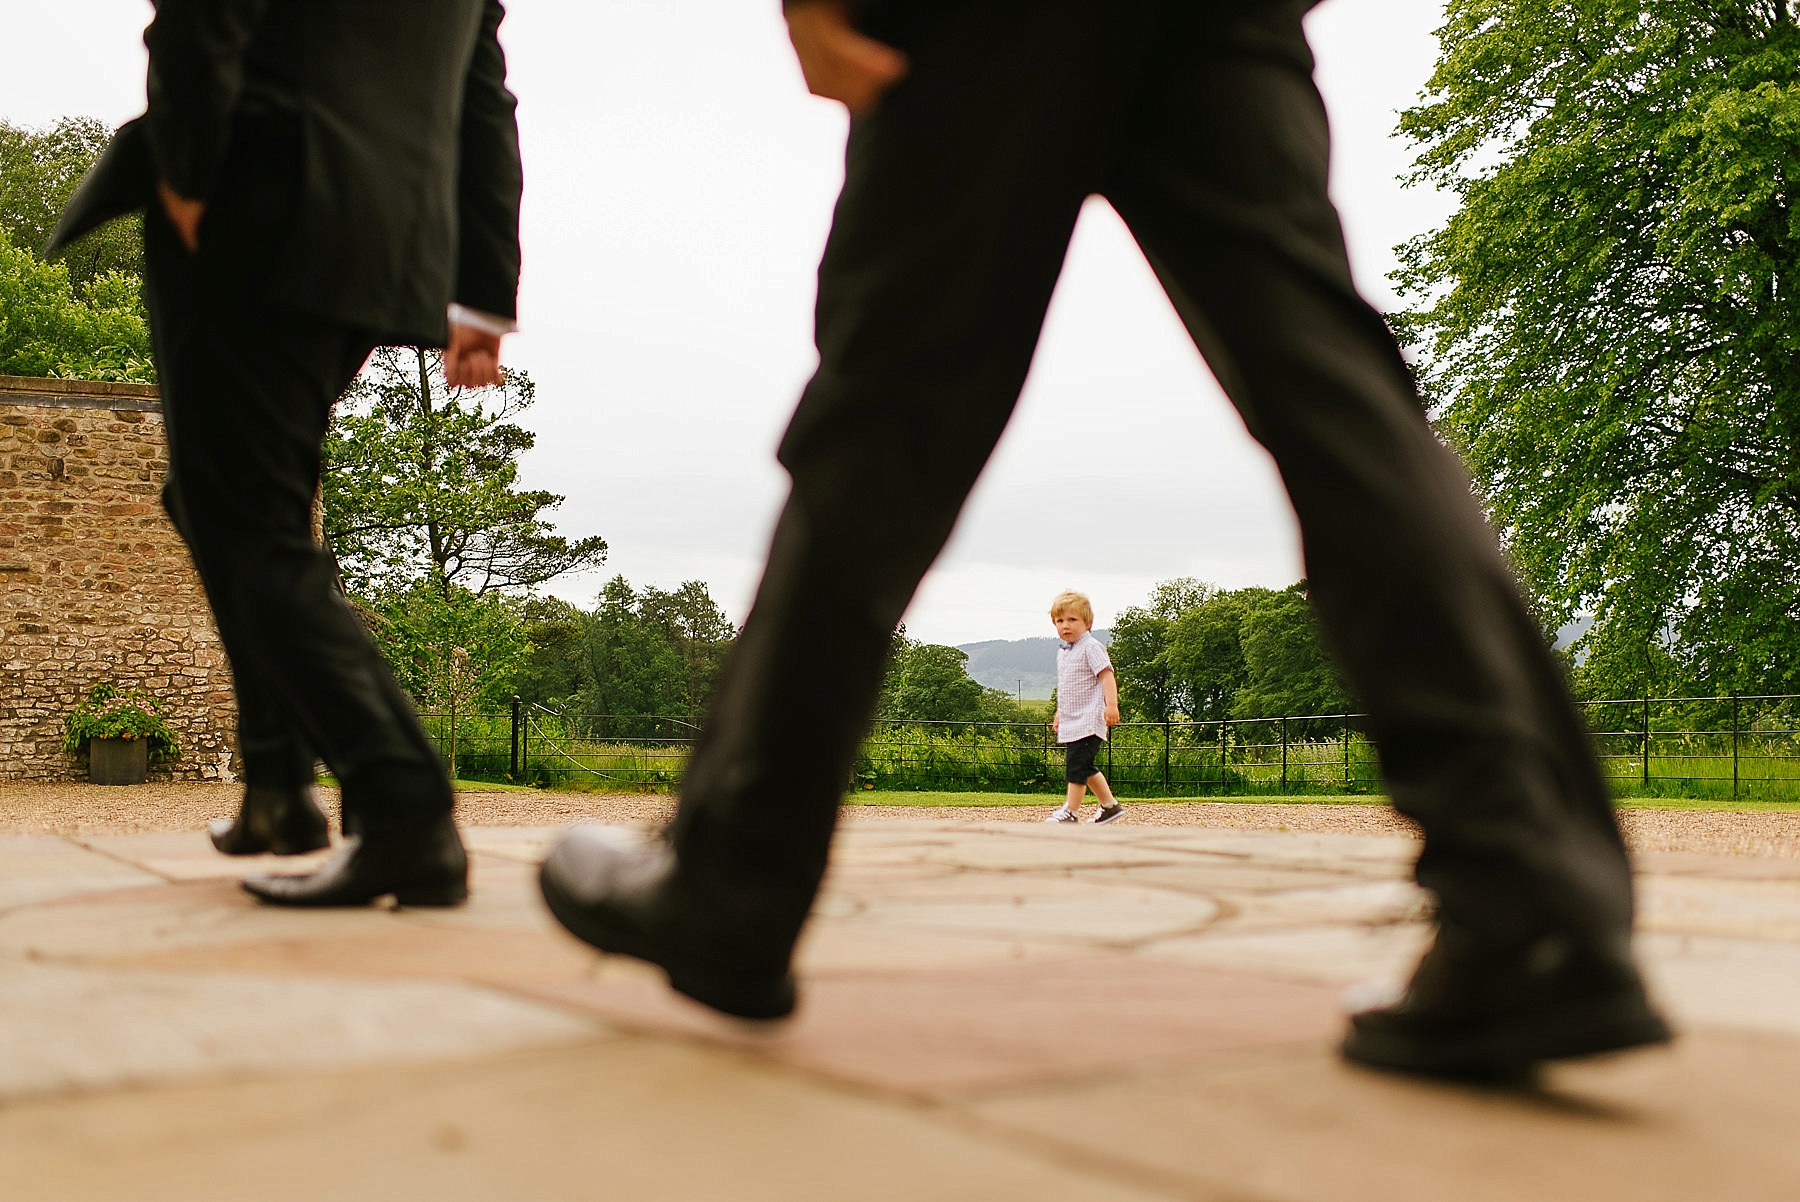 legs walking and in the background a child looks at the camera